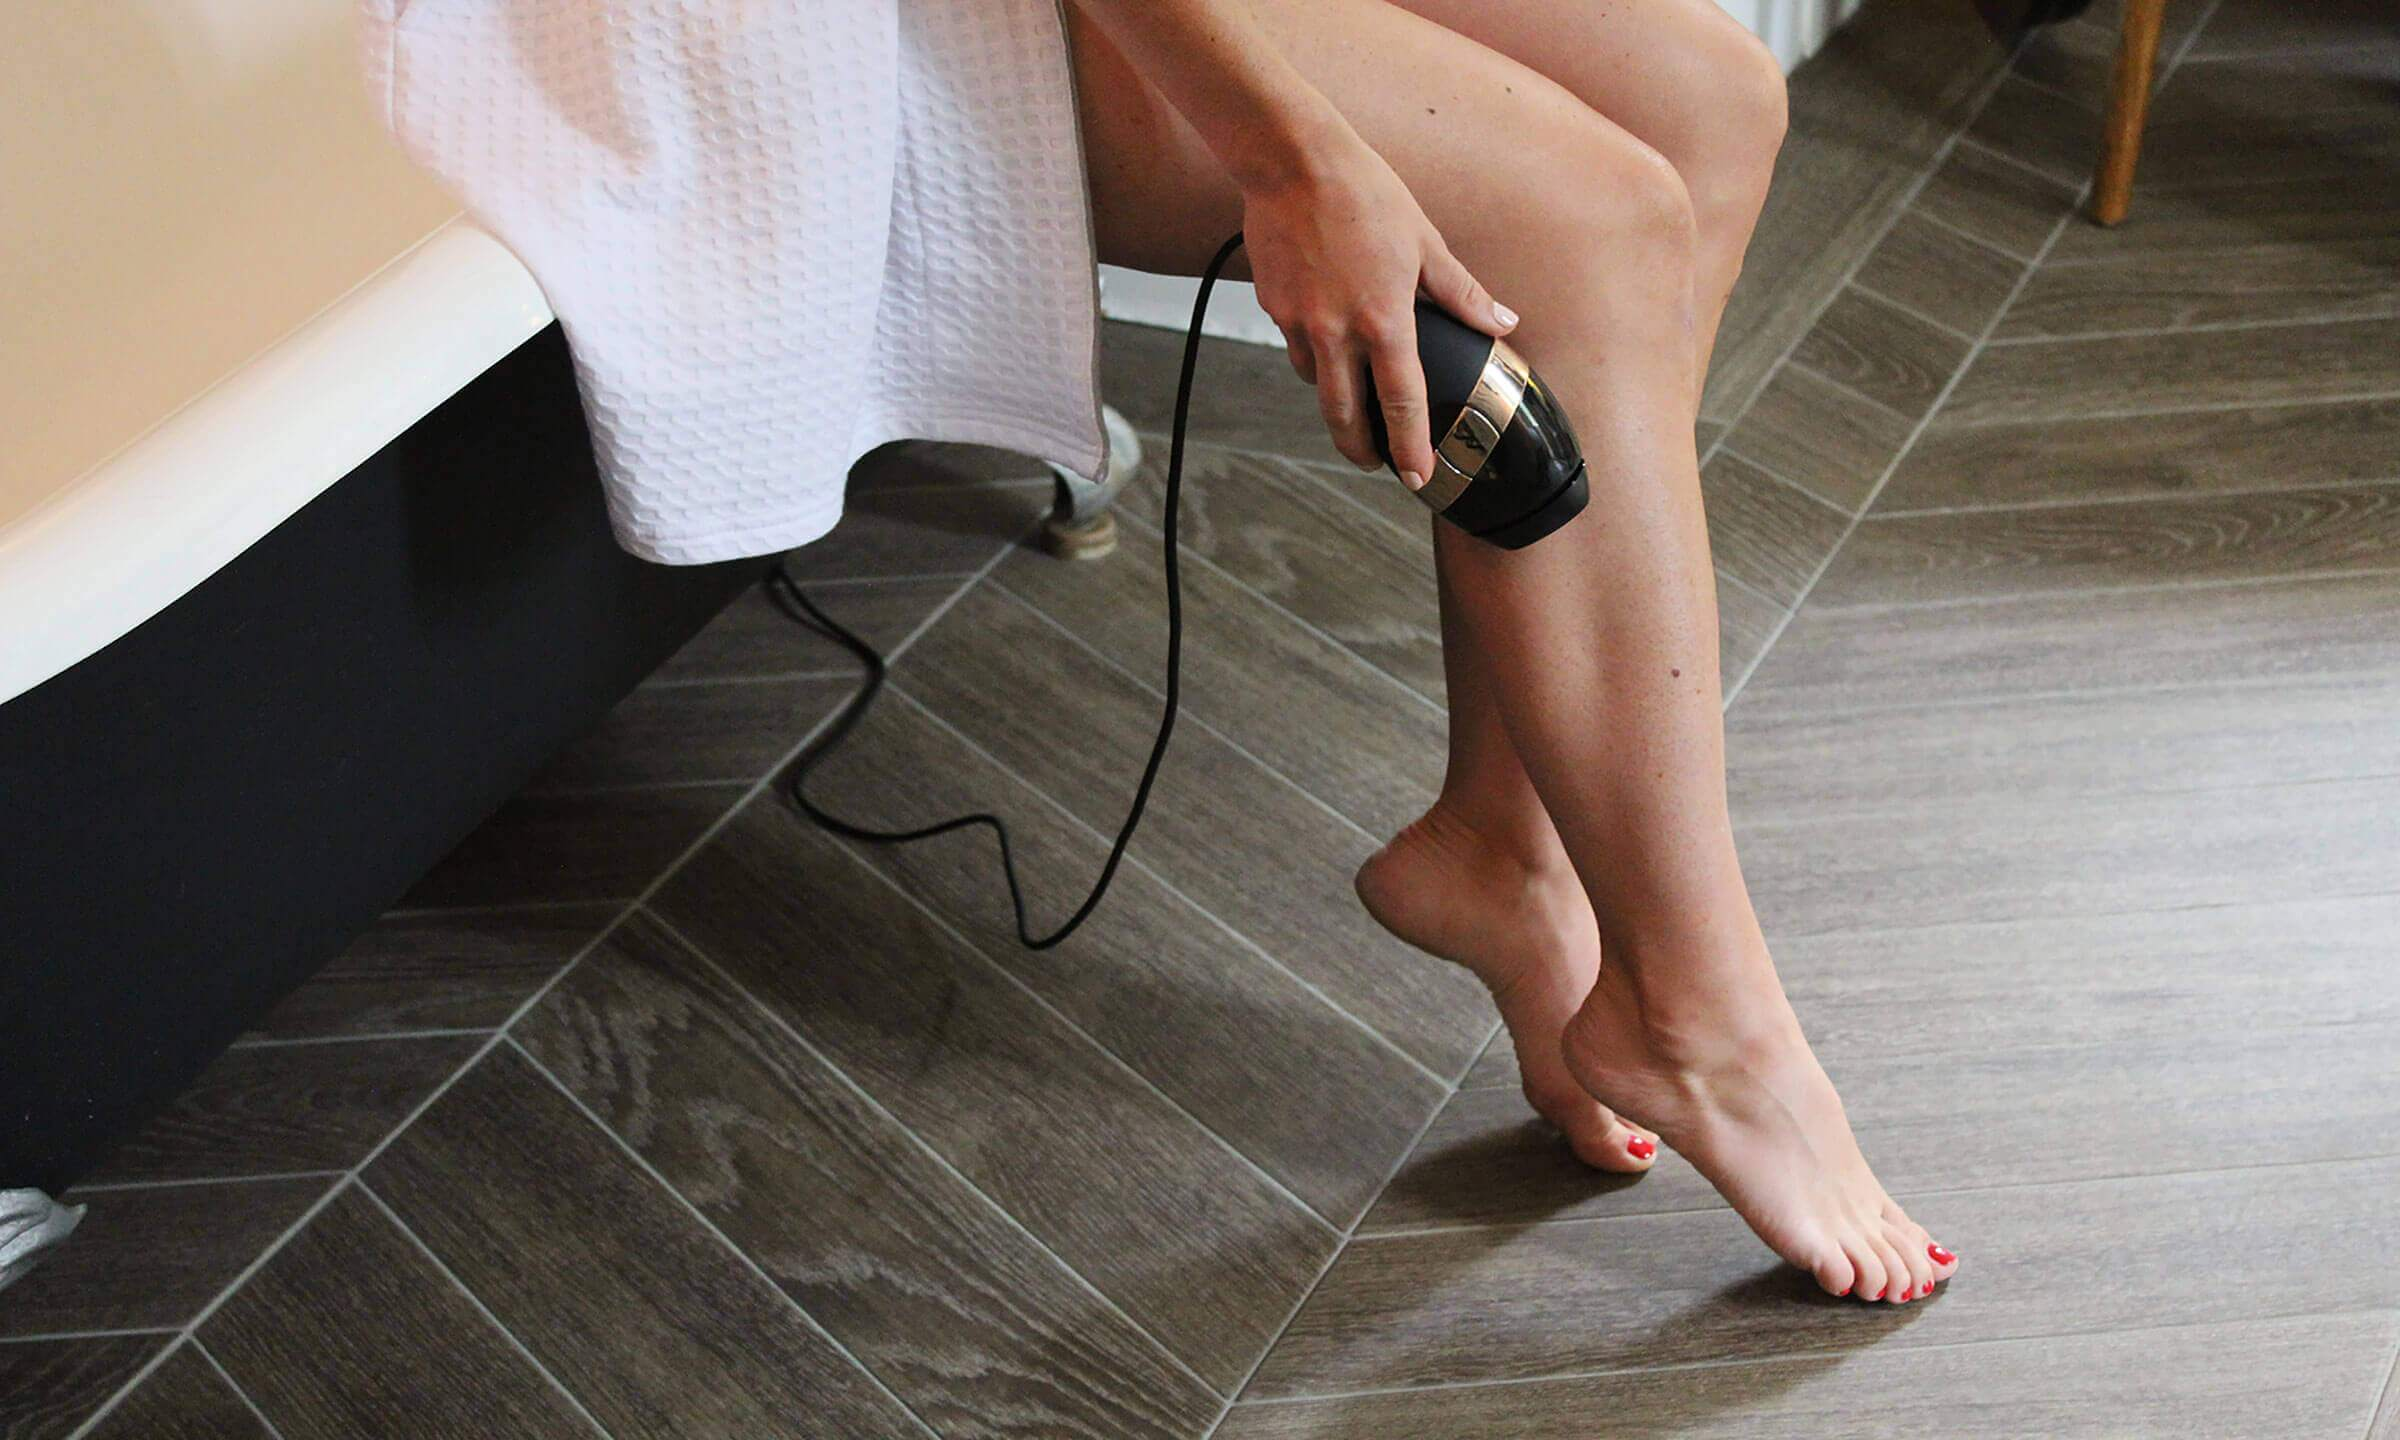 How much is laser hair removal?